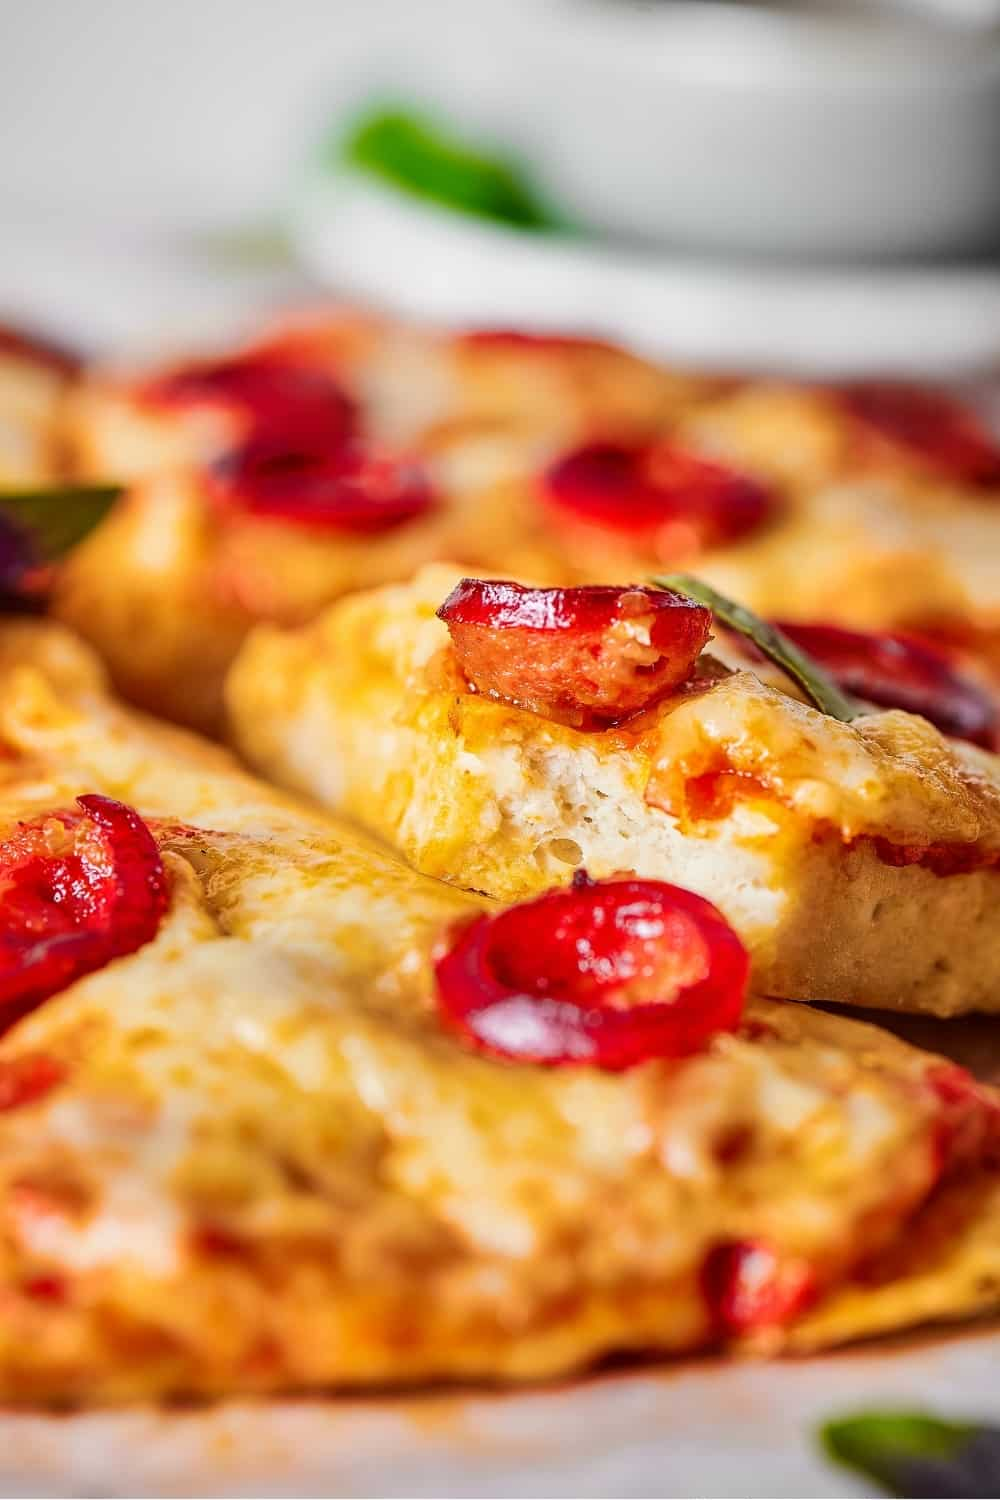 A slice of cheese and pepperoni chicken crust pizza with a bite out of the front on top of another slice of pizza.